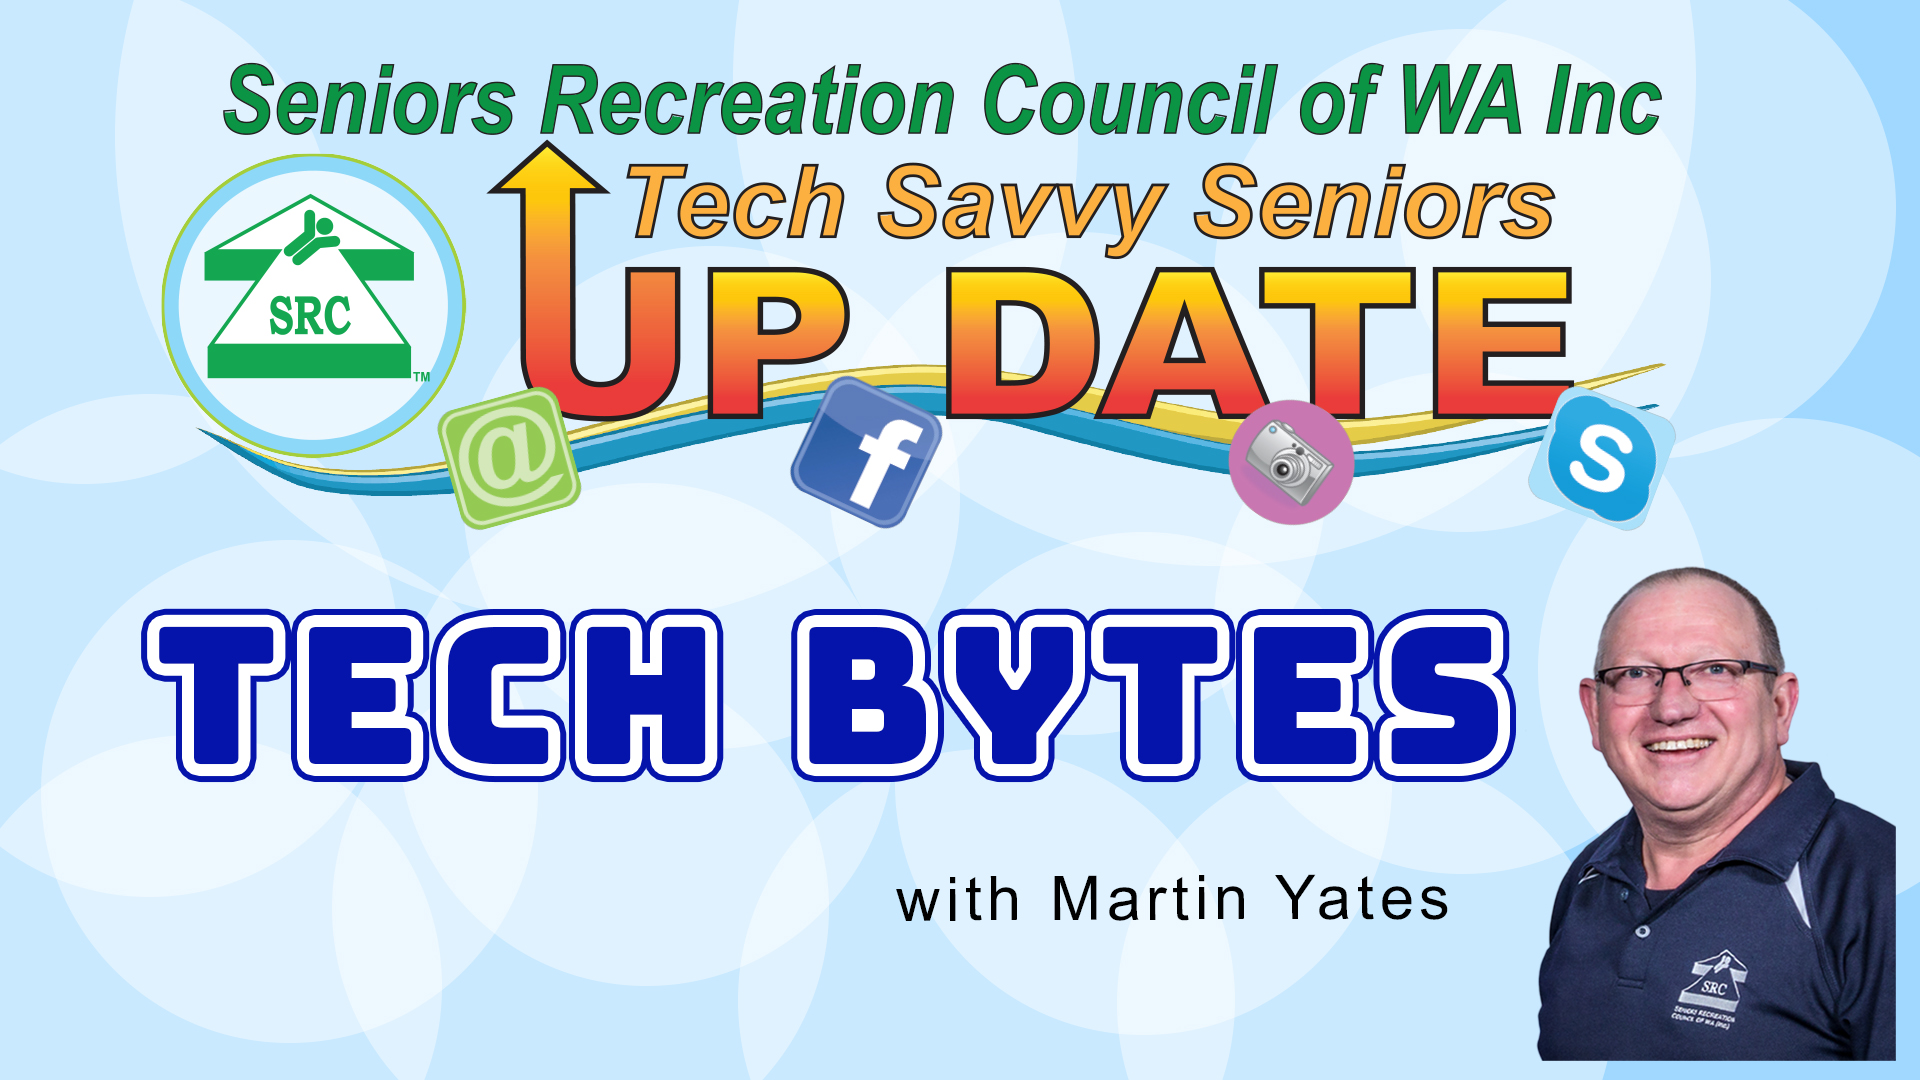 SRCWA Tech Savvy Seniors Tech Bytes and Updates Now Online